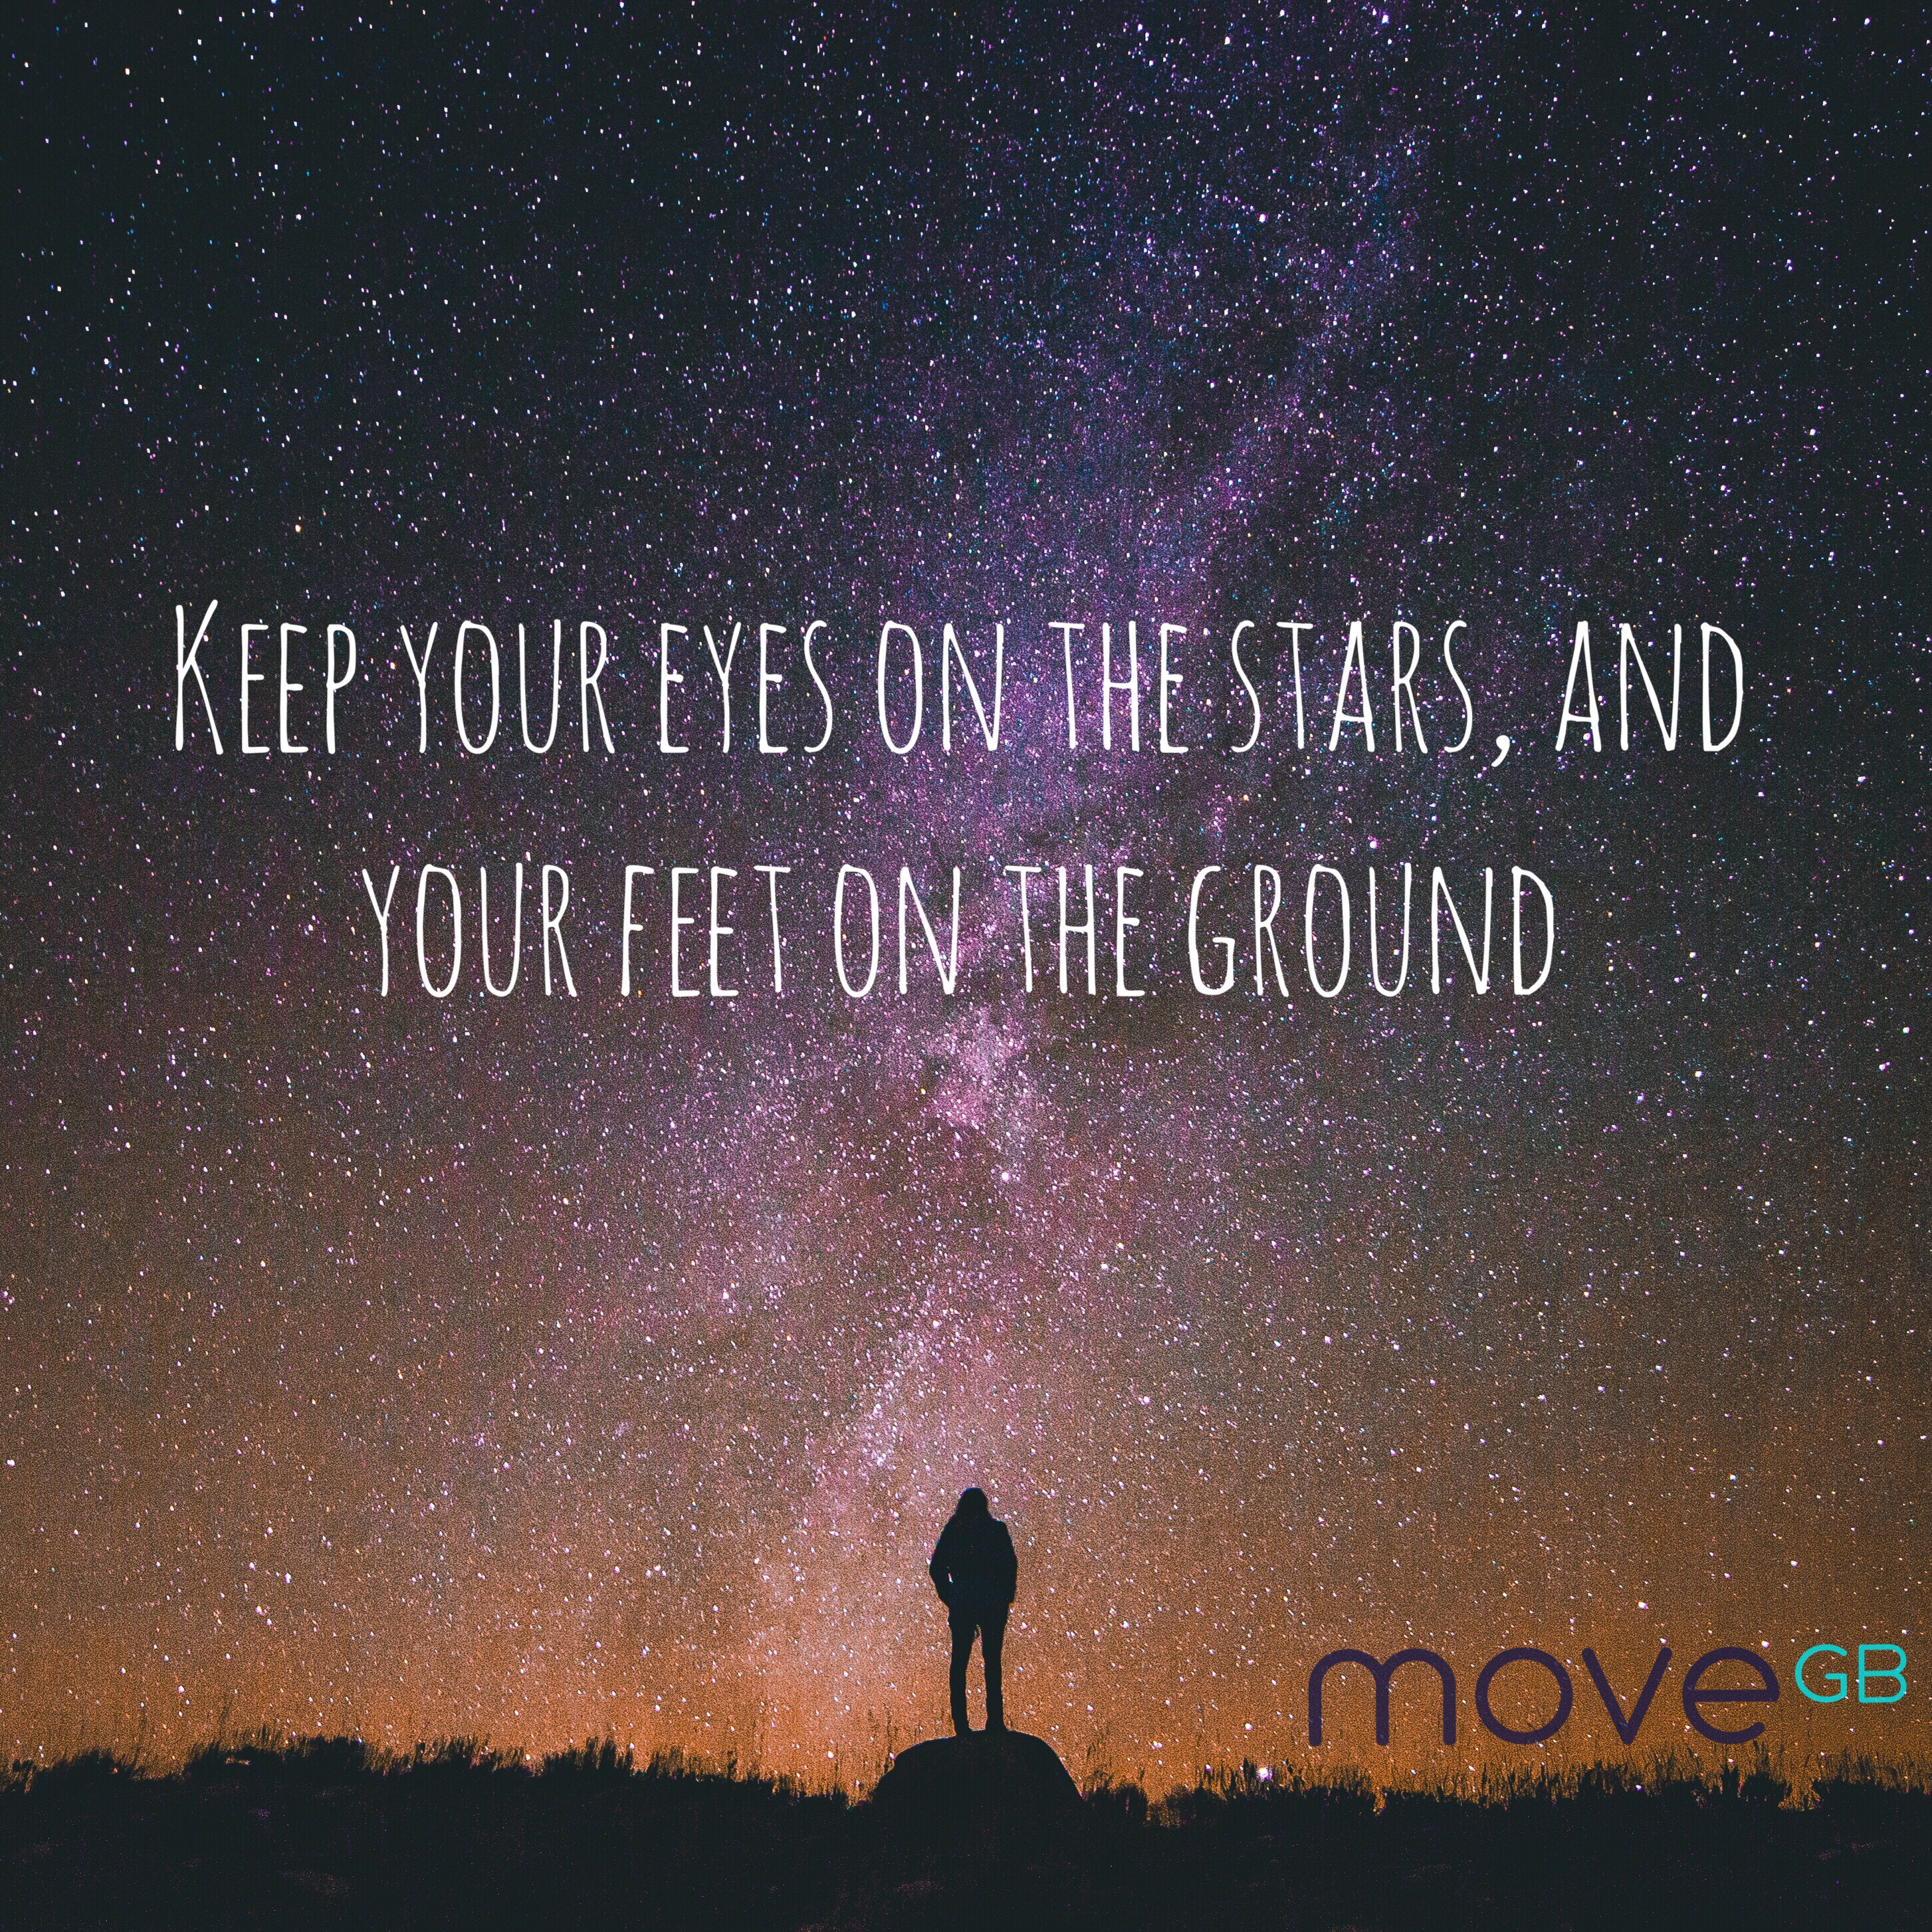 Keep_your_eyes_on_the_stars_and_your_feet_on_the_ground